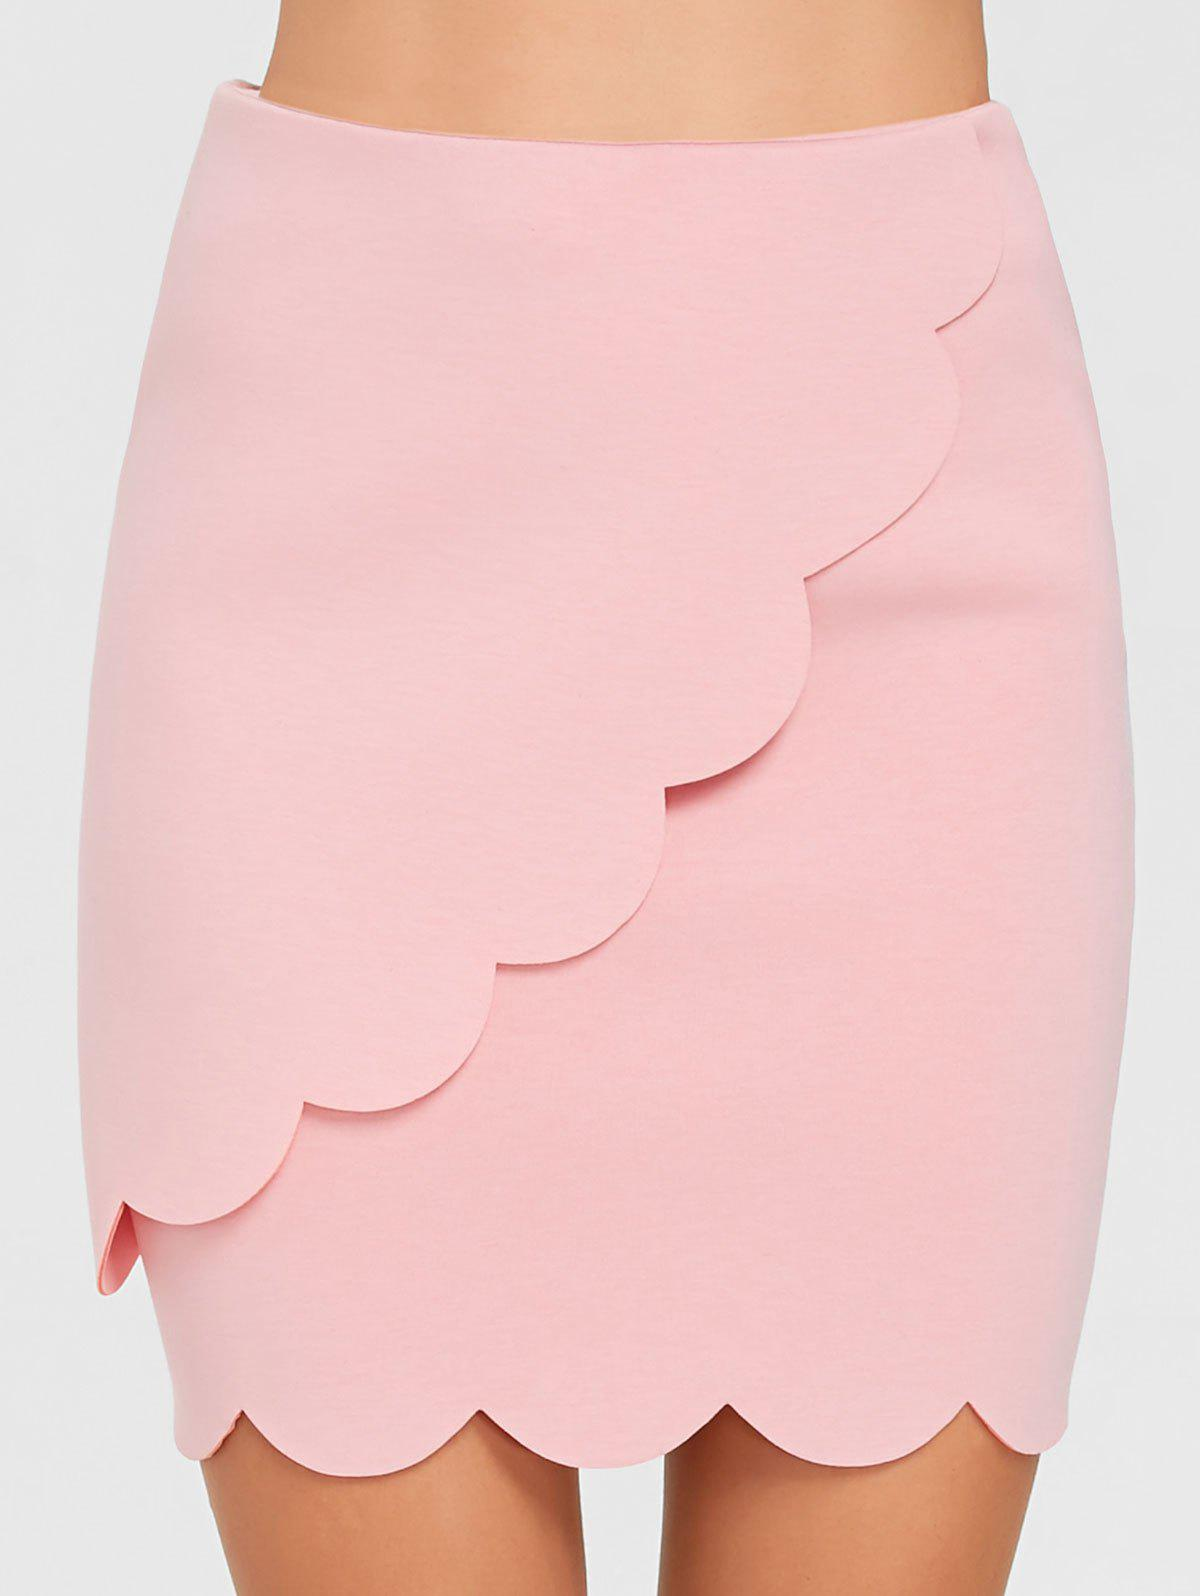 Fancy High Waisted Scalloped Mini Bodycon Skirt